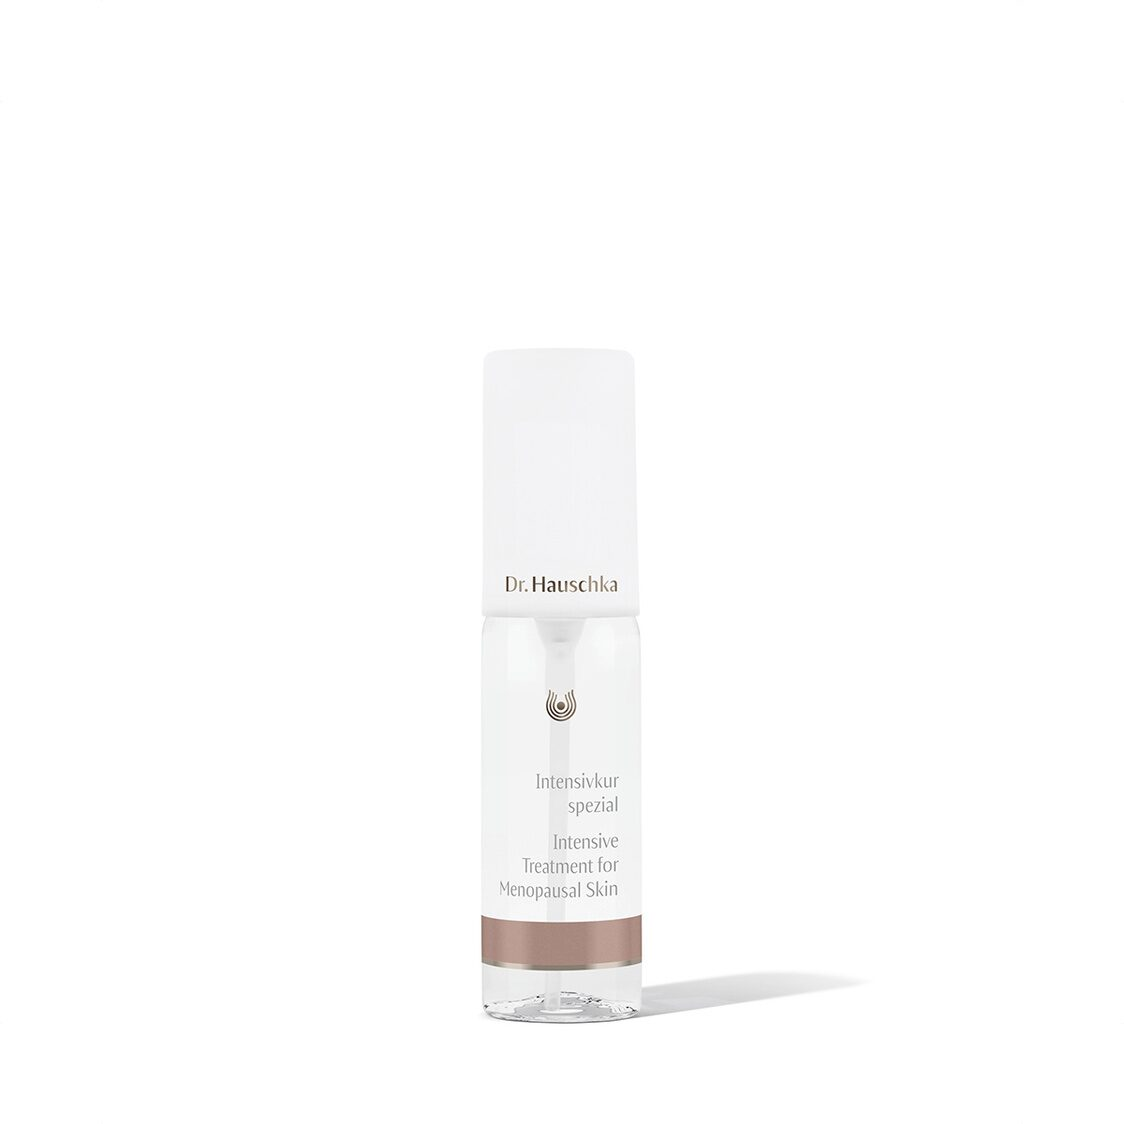 Intensive Treatment for Menopausal Skin 40ml